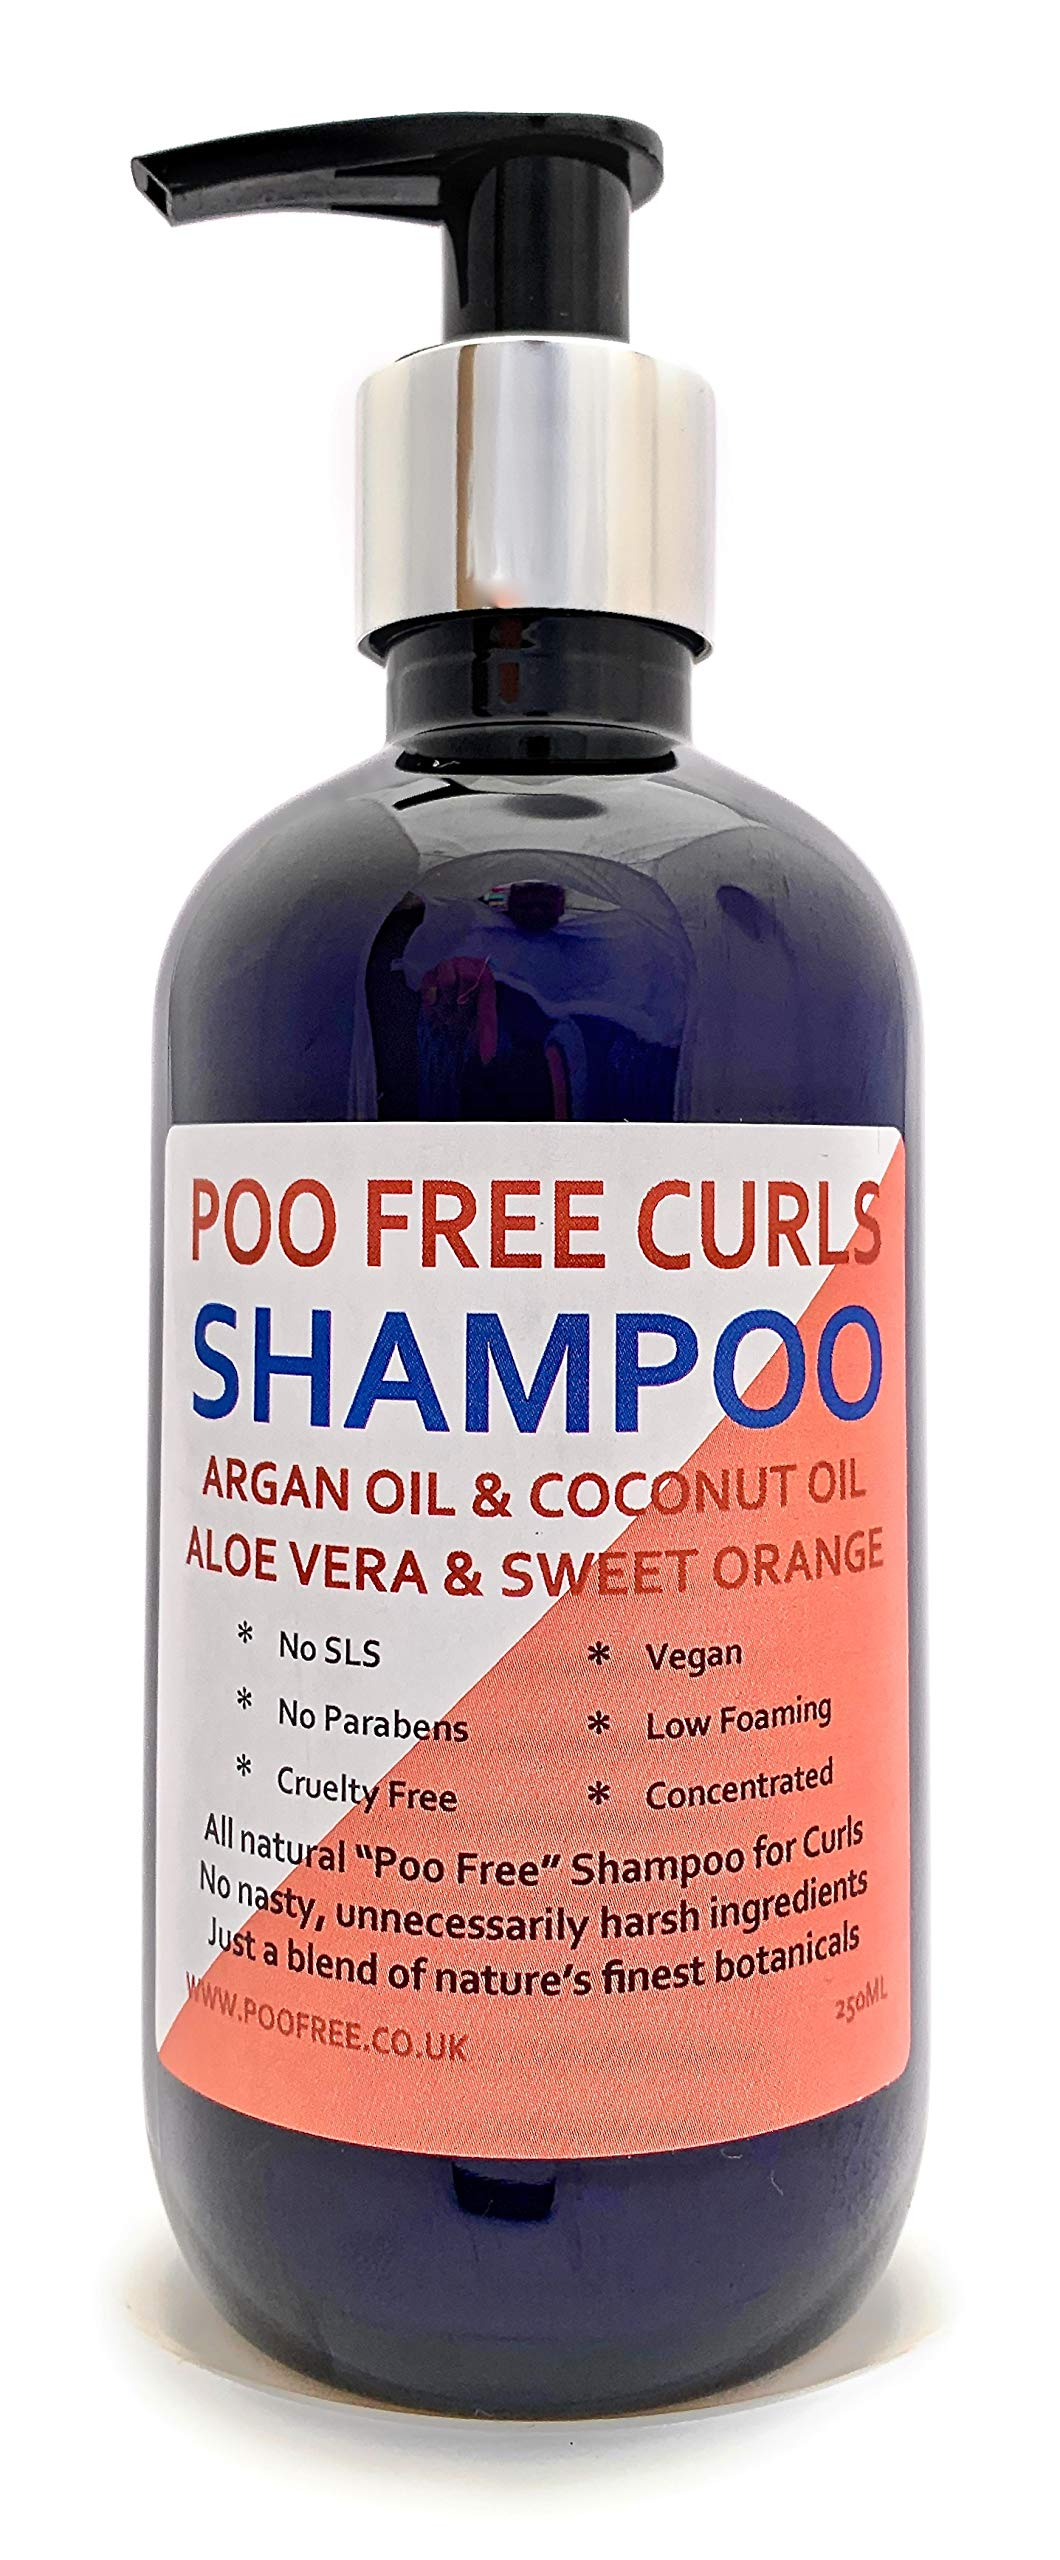 Natural Shampoo Curly Hair Formulation With Argan Oil Coconut Oil Sweet Orange 250ml By Poo Free No Sulfates No Parabens No Silicones Low Lather Gentle Concentrated Buy